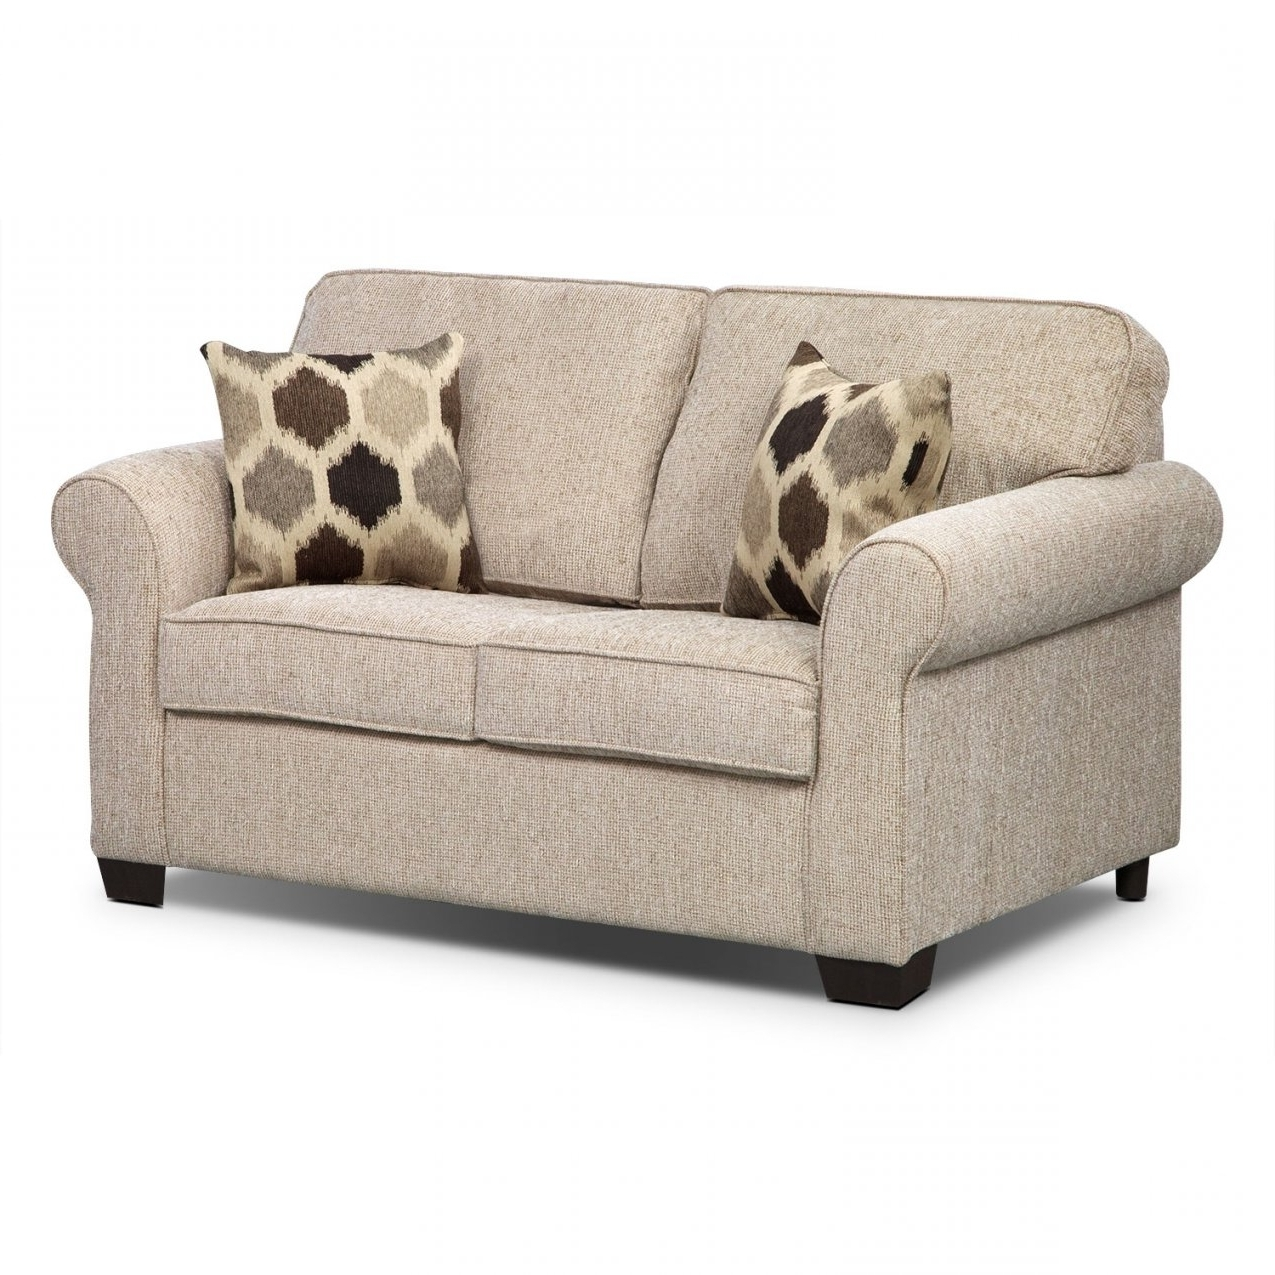 Current Furniture 45+ Singular Twin Sleeper Chair Photos Ideas Size With Within Twin Sleeper Sofa Chairs (View 3 of 20)